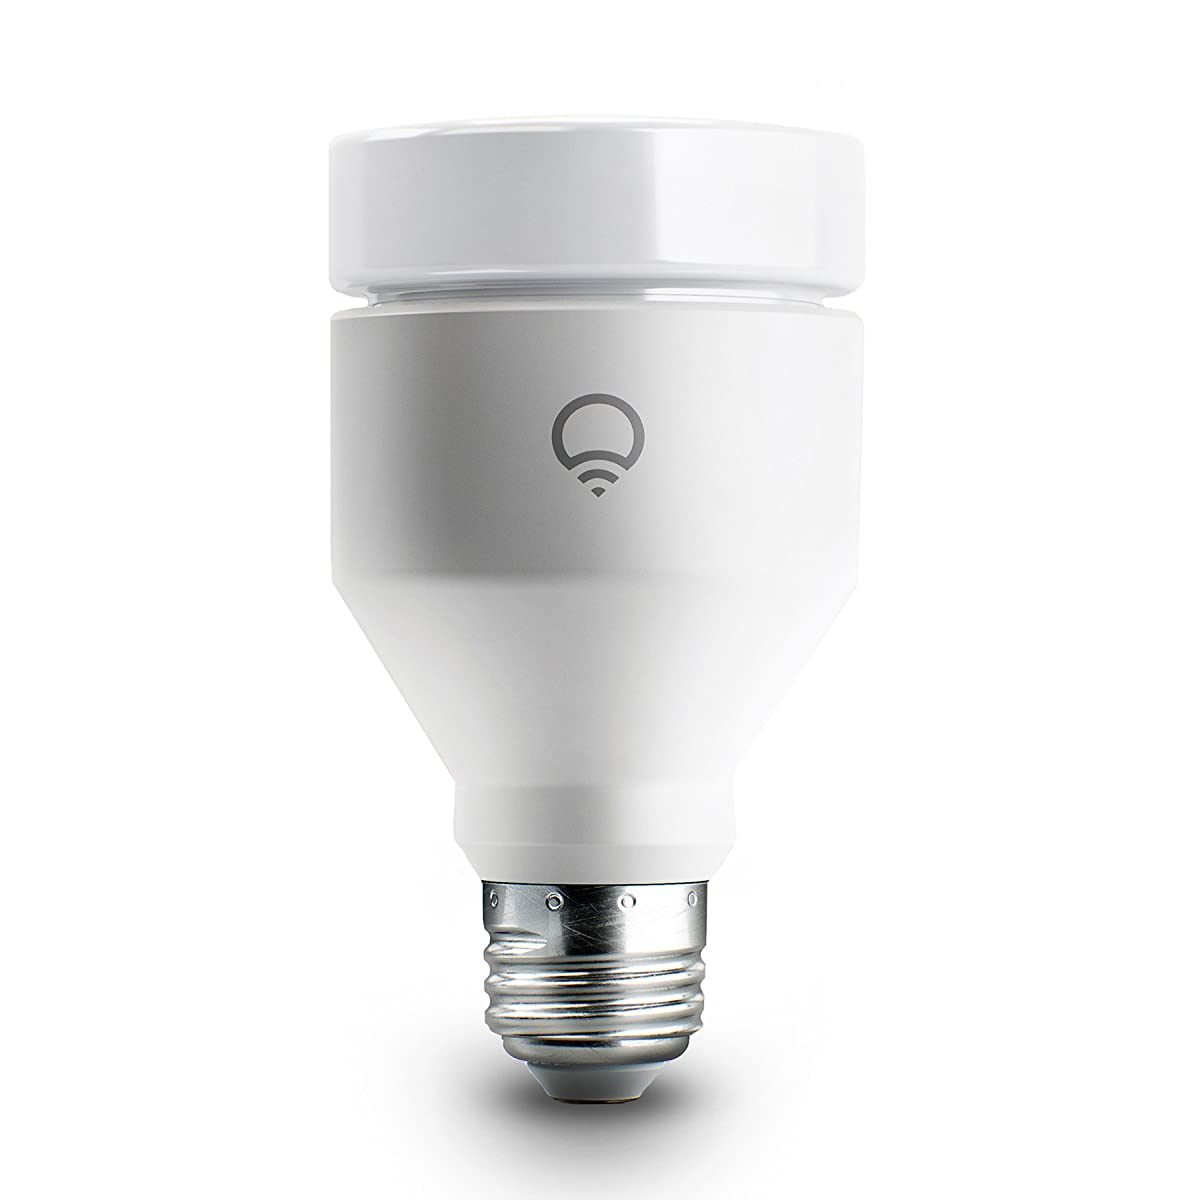 LIFX (A19) Wi-Fi Smart LED Light Bulb, Adjustable, Multicolor, Dimmable, No Hub Required, Works with Alexa